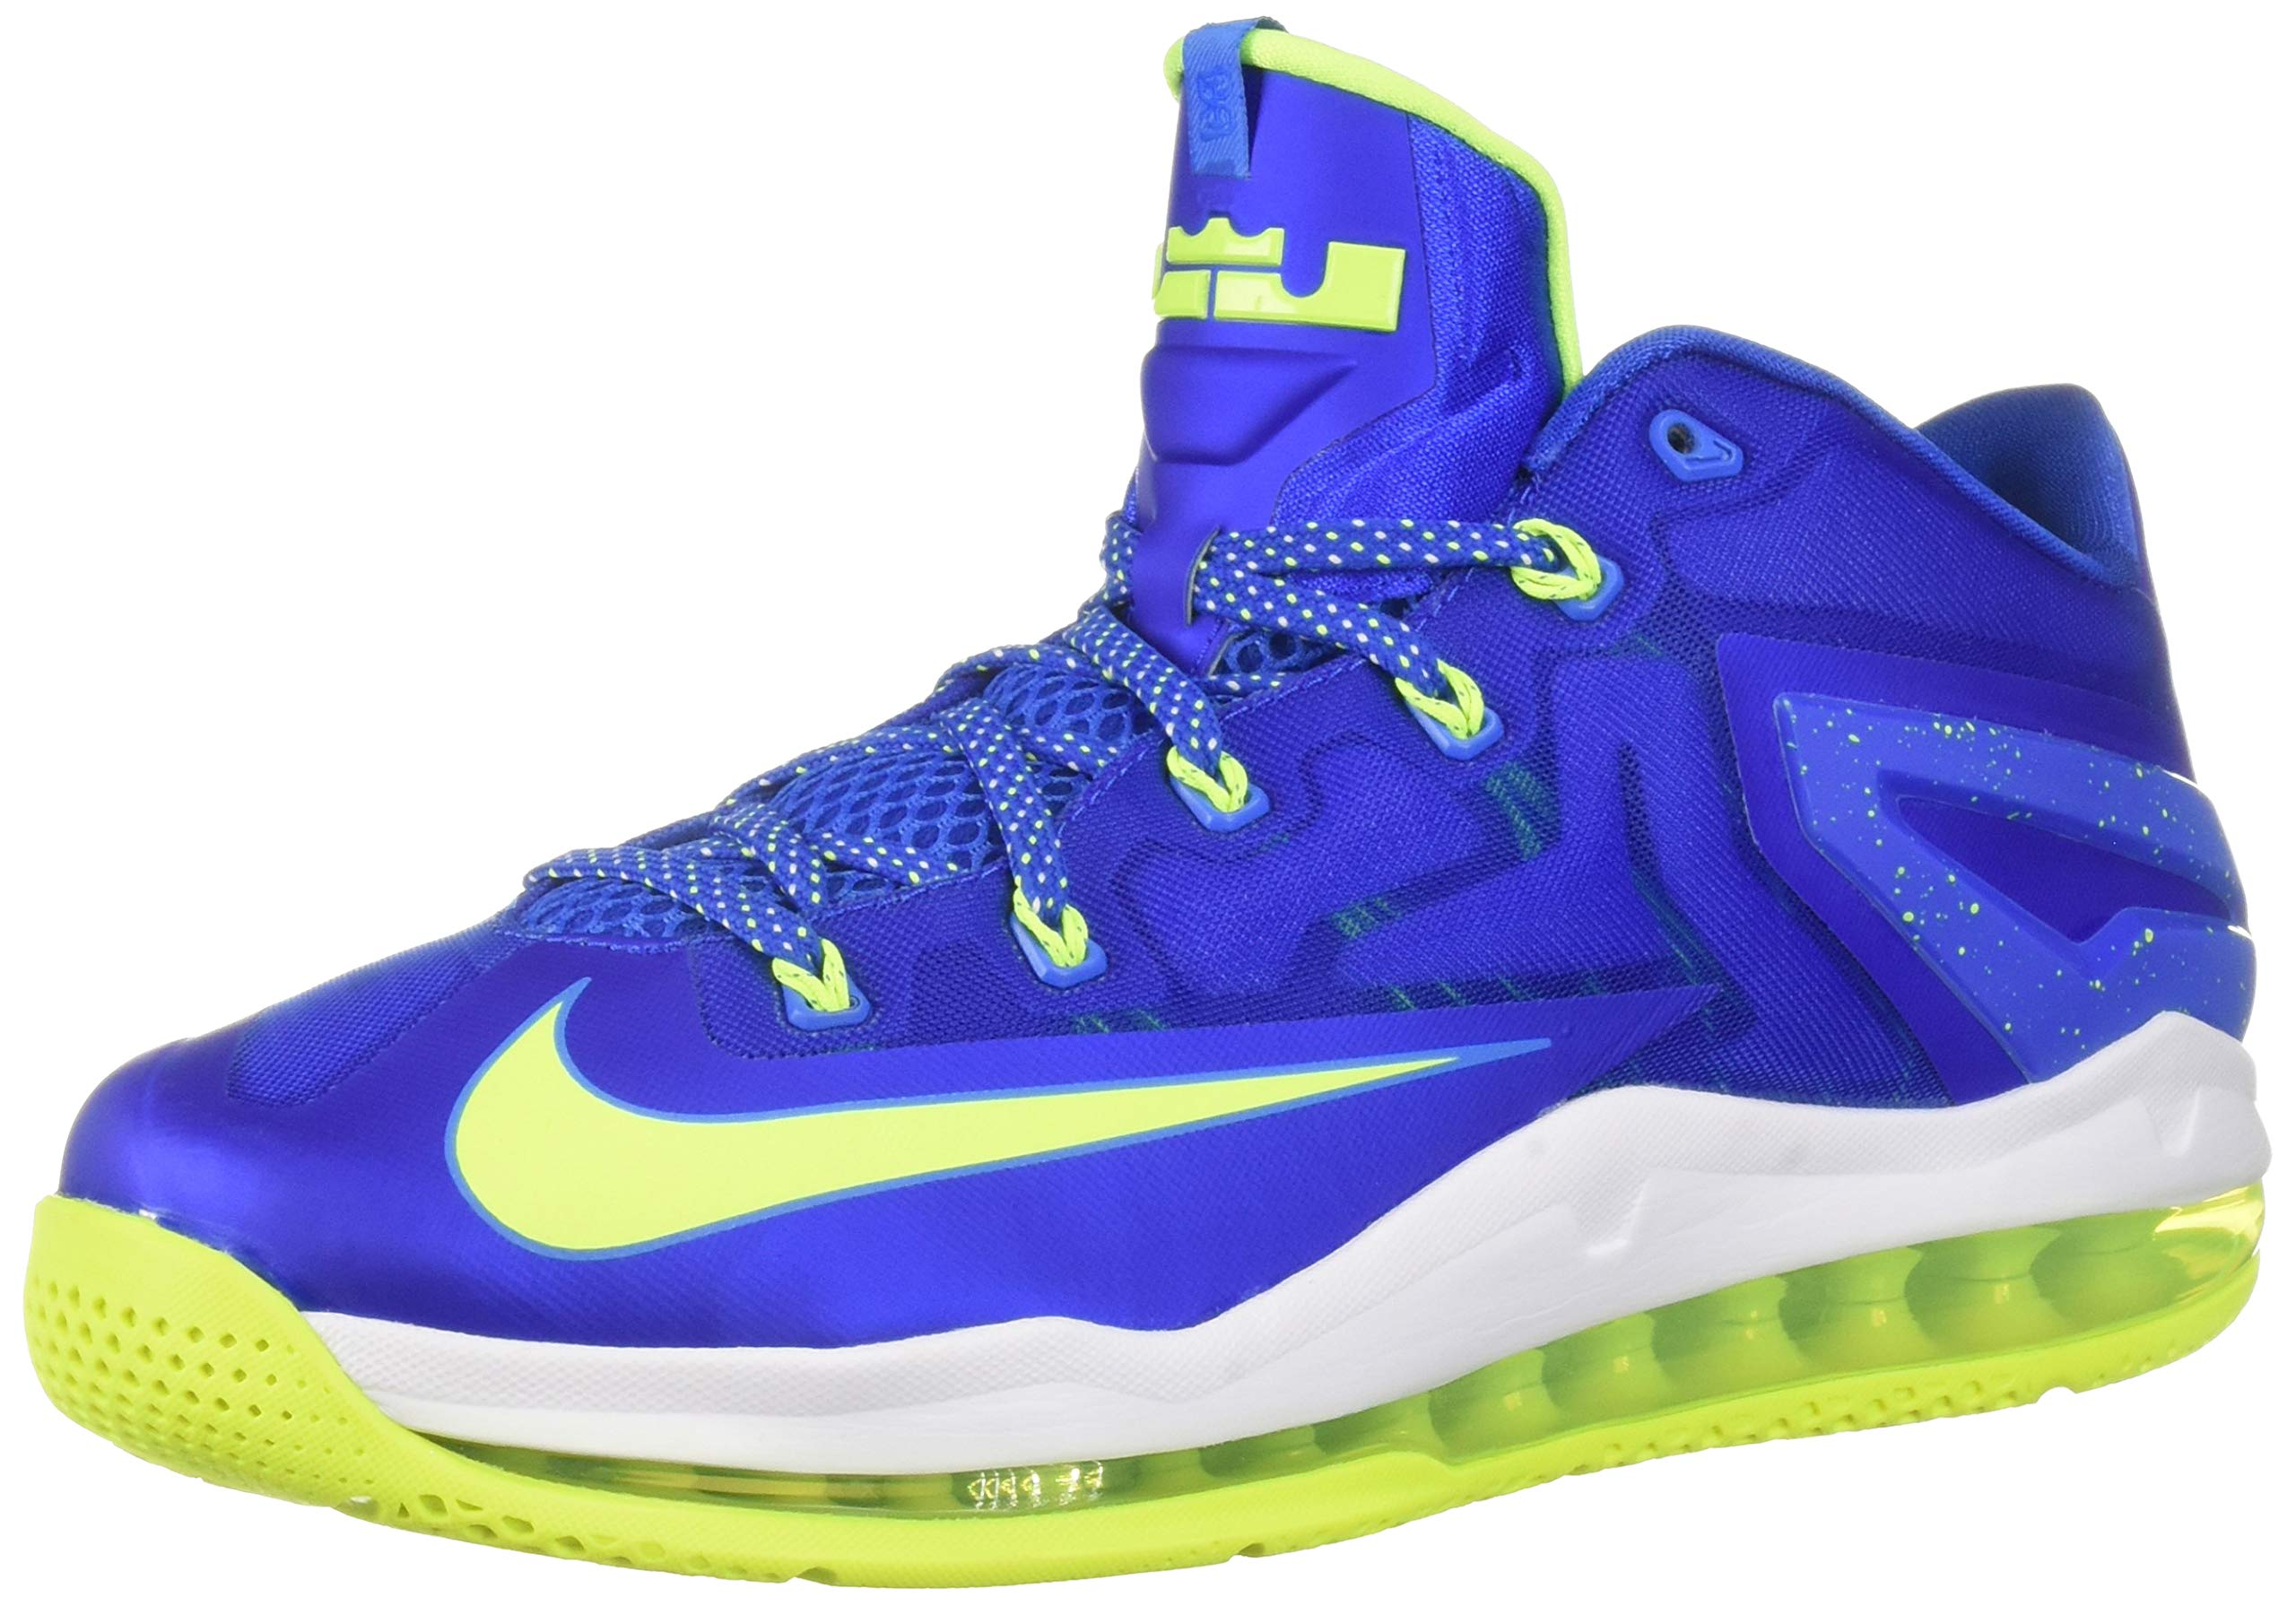 dbe13f42e087b0 Galleon - NIKE Max Lebron XI Low Men Sneakers Hyper Cobalt White Photo  Blue Volt 642849-471 (SIZE  11.5)